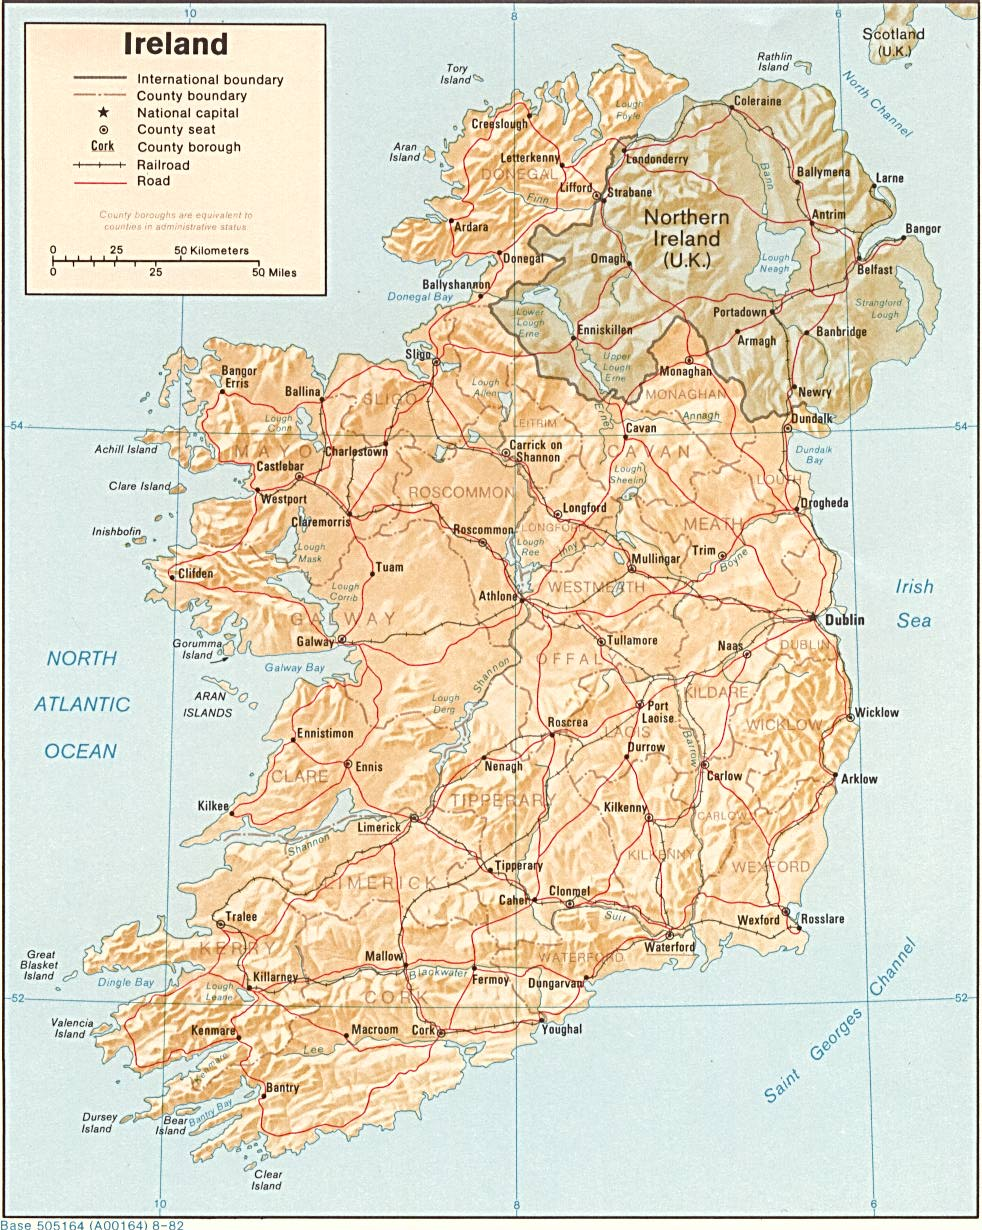 Map Of Ireland Download.Download Free Ireland Maps